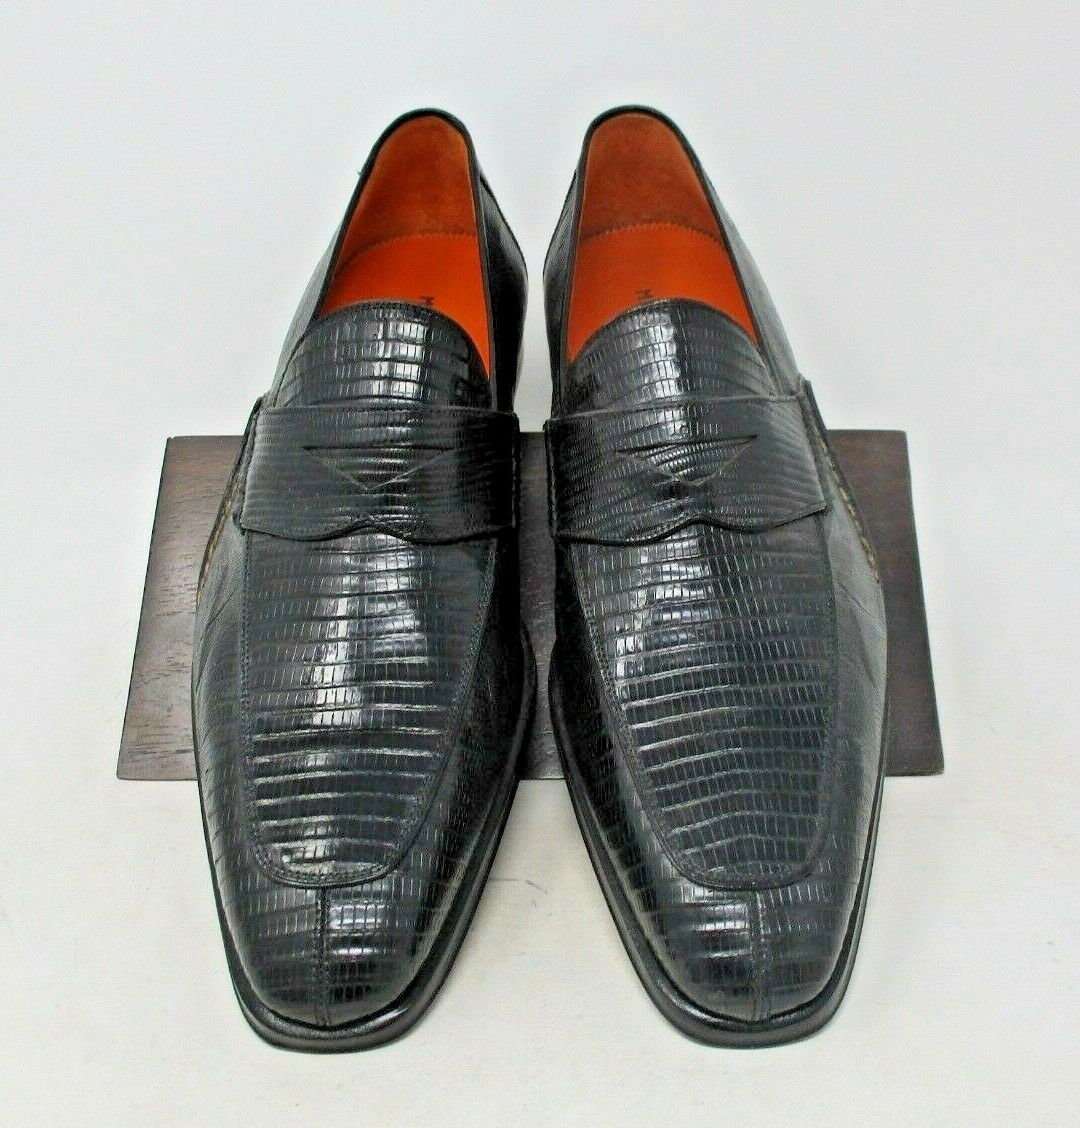 Magnanni nero Lizard Loafers Dimensione 8 US (SAMPLE) 1283